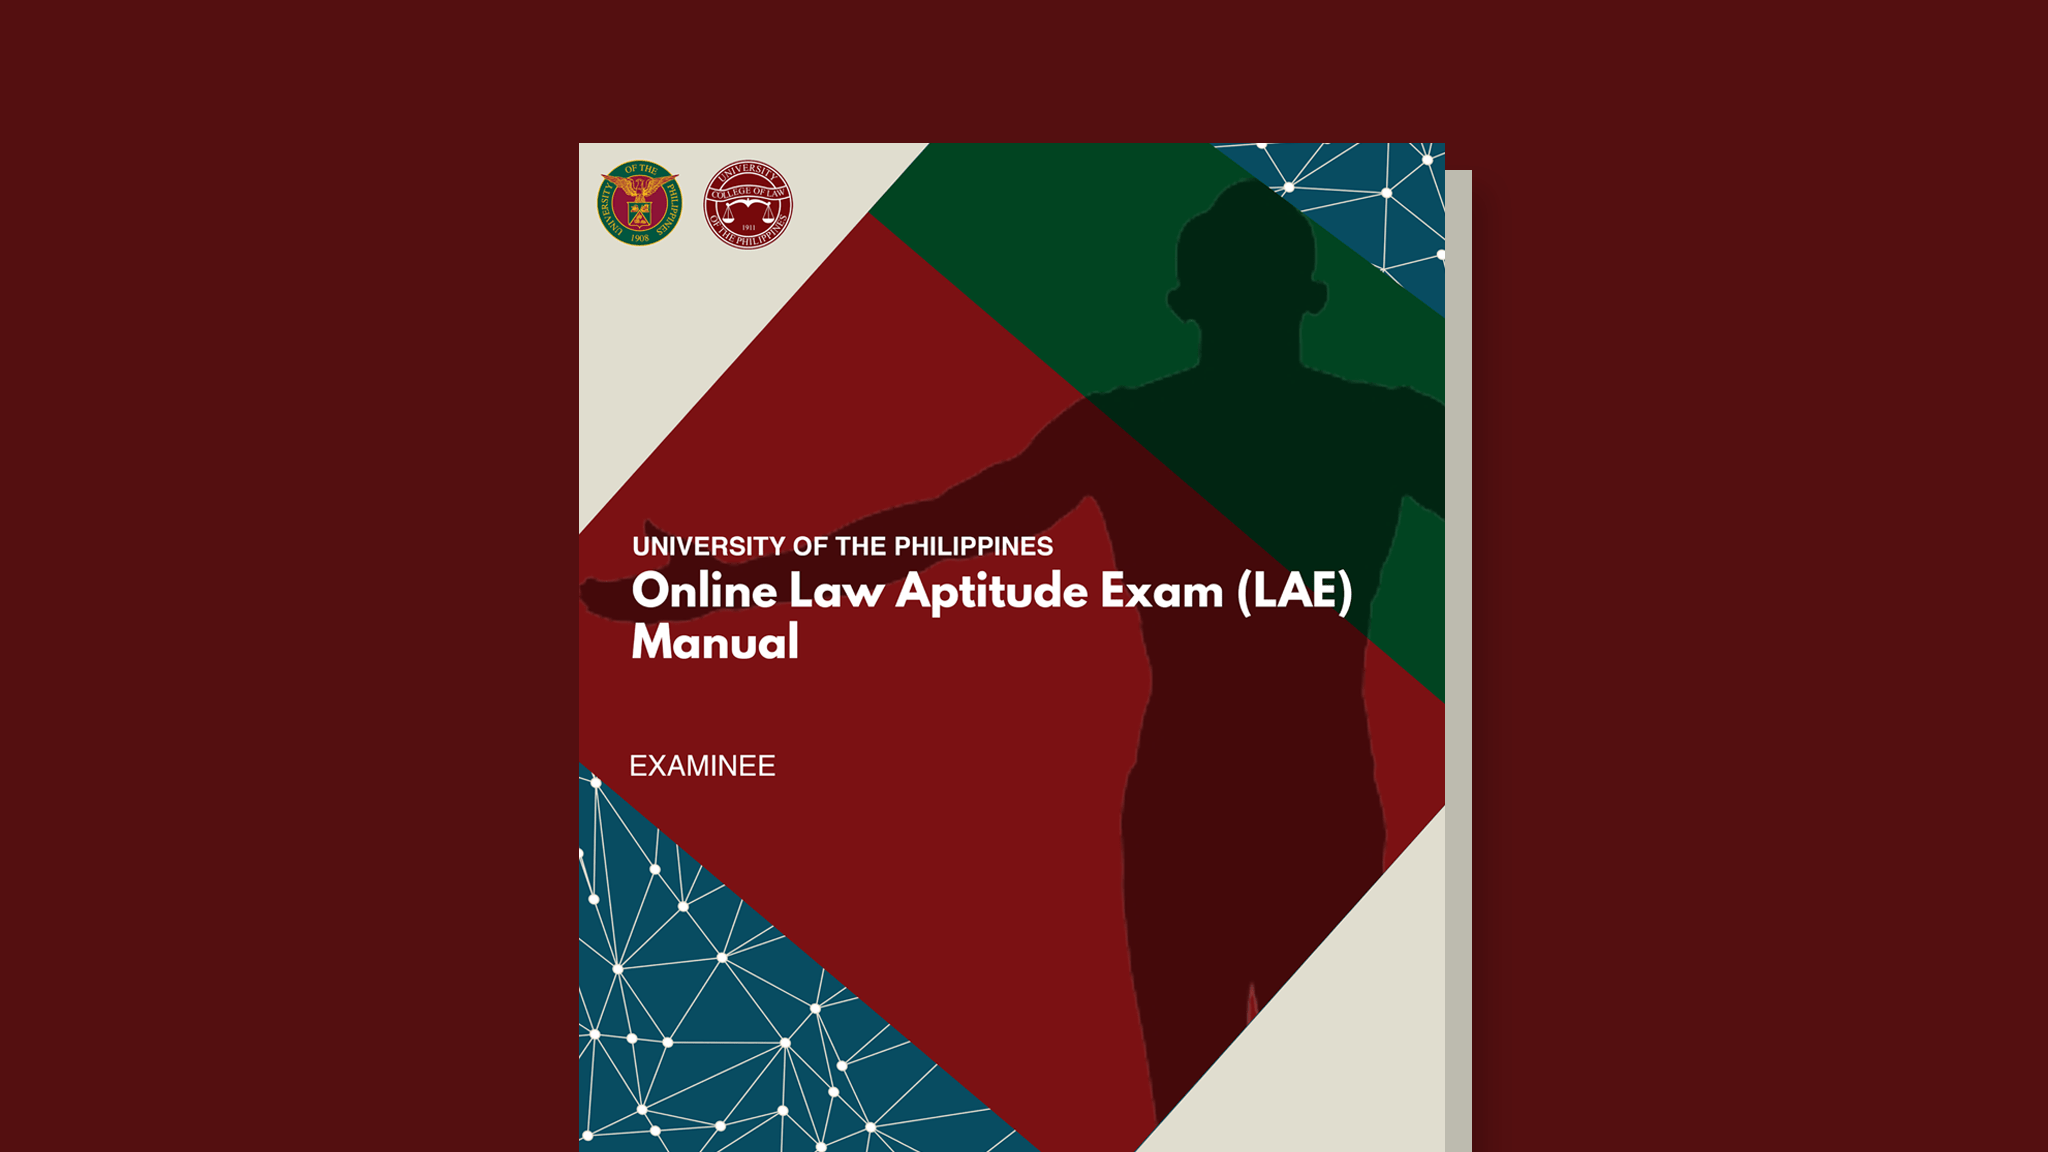 Guidelines for 2021 Law Aptitude Examination